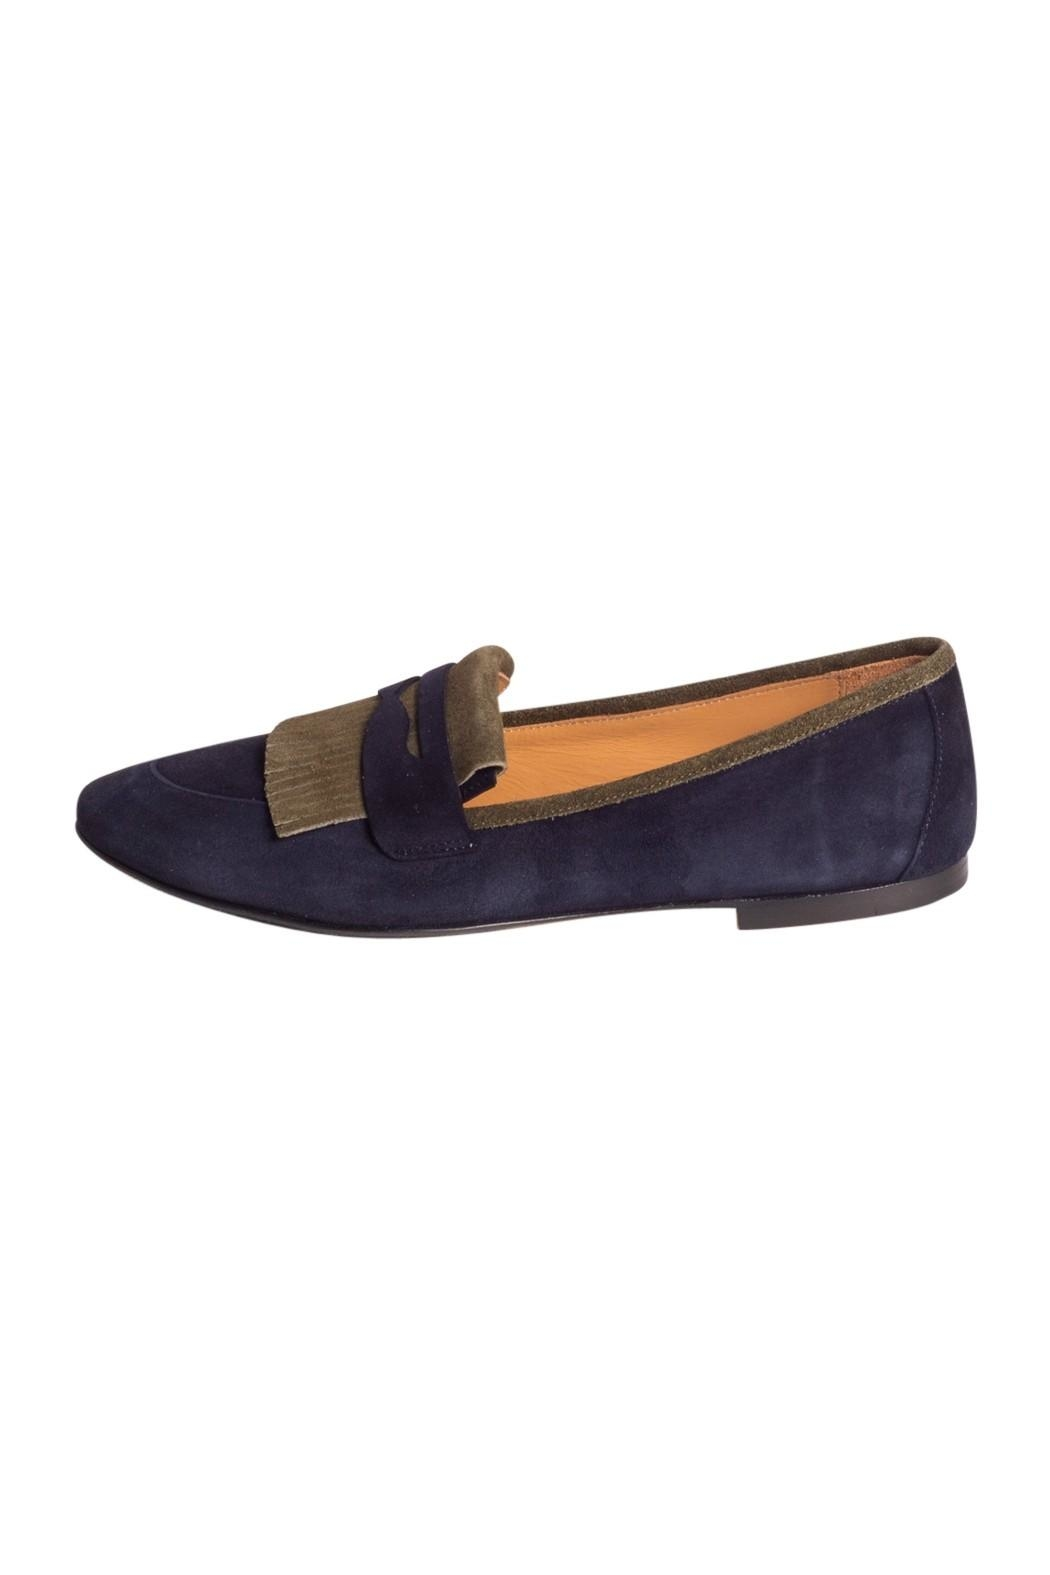 Pascucci Two-Tone Suede Loafer - Main Image